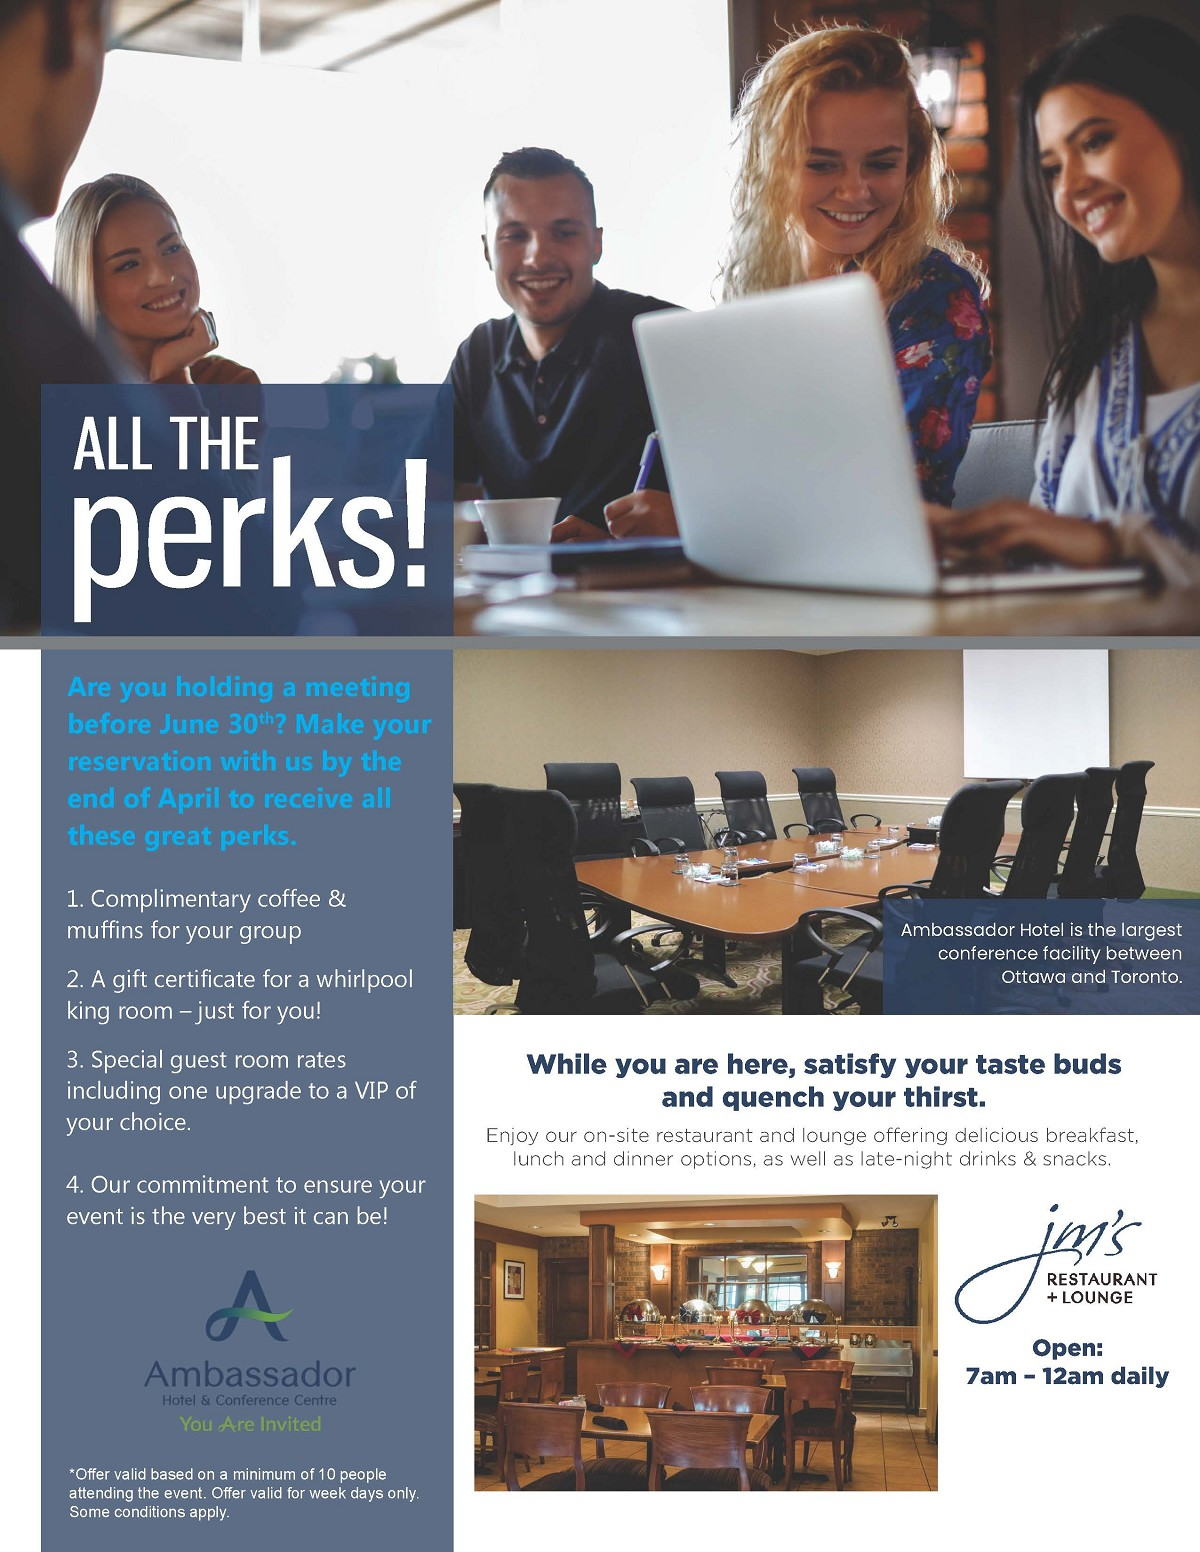 amb-all-the-perks-flyer-8